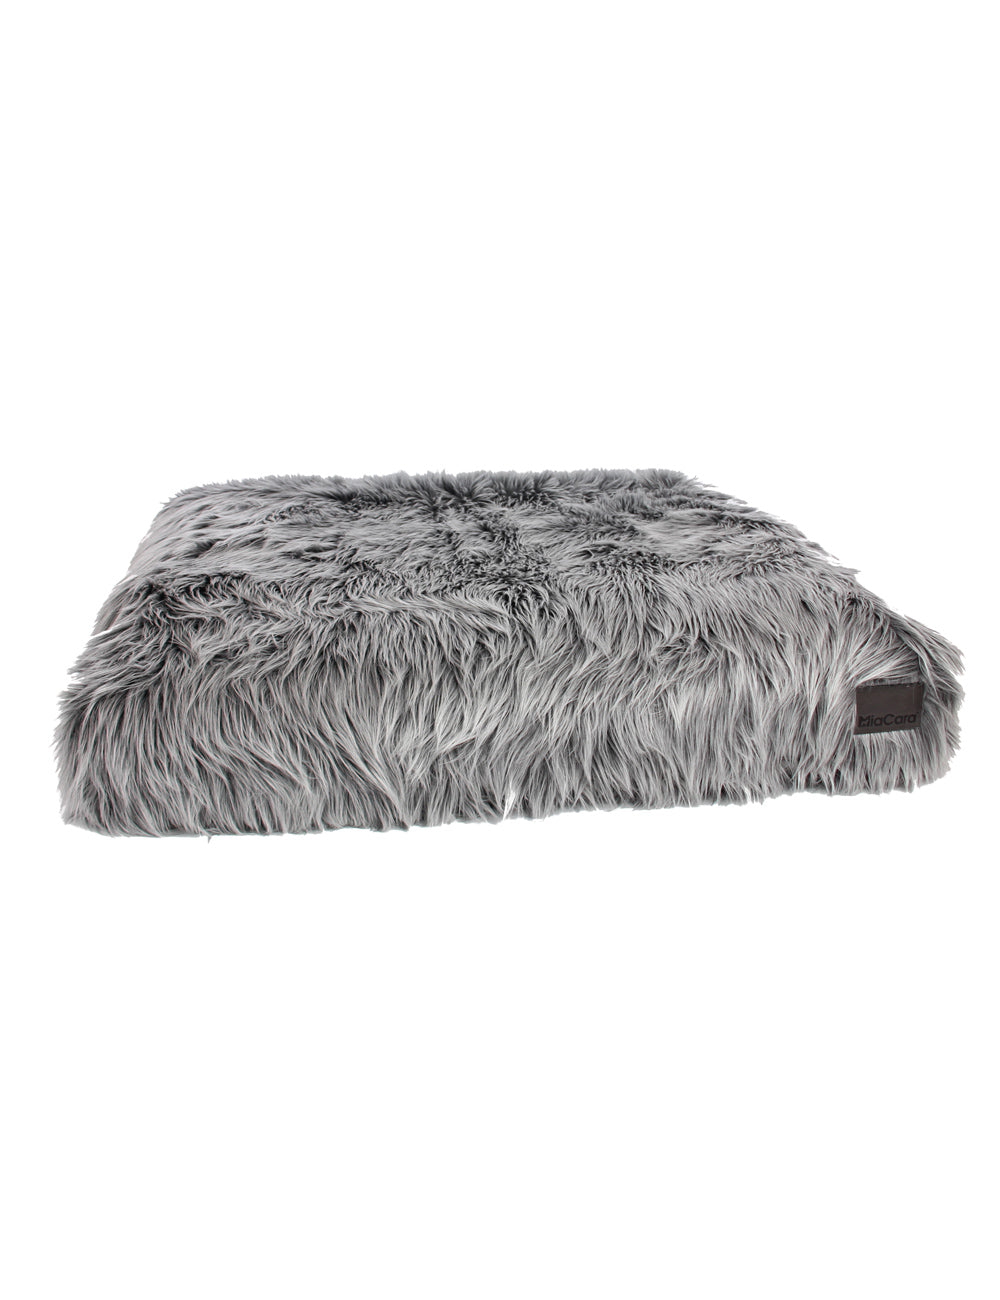 Capello Dog Bed | Grey & Black